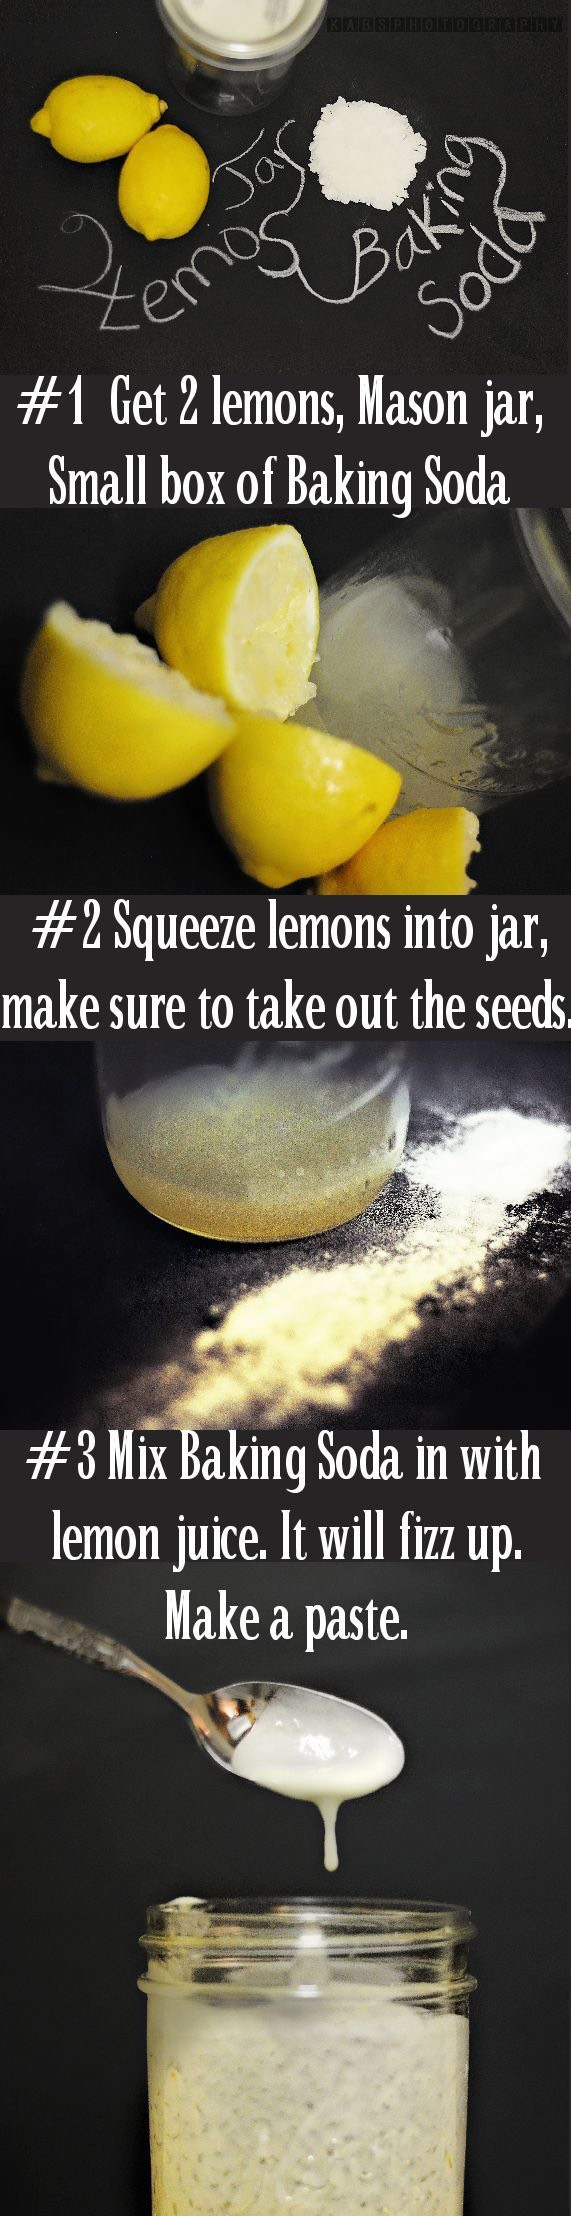 12. A lot of people swear by lemon and baking soda. Baking soda can be rough on sensitive skin, so be careful with this option.